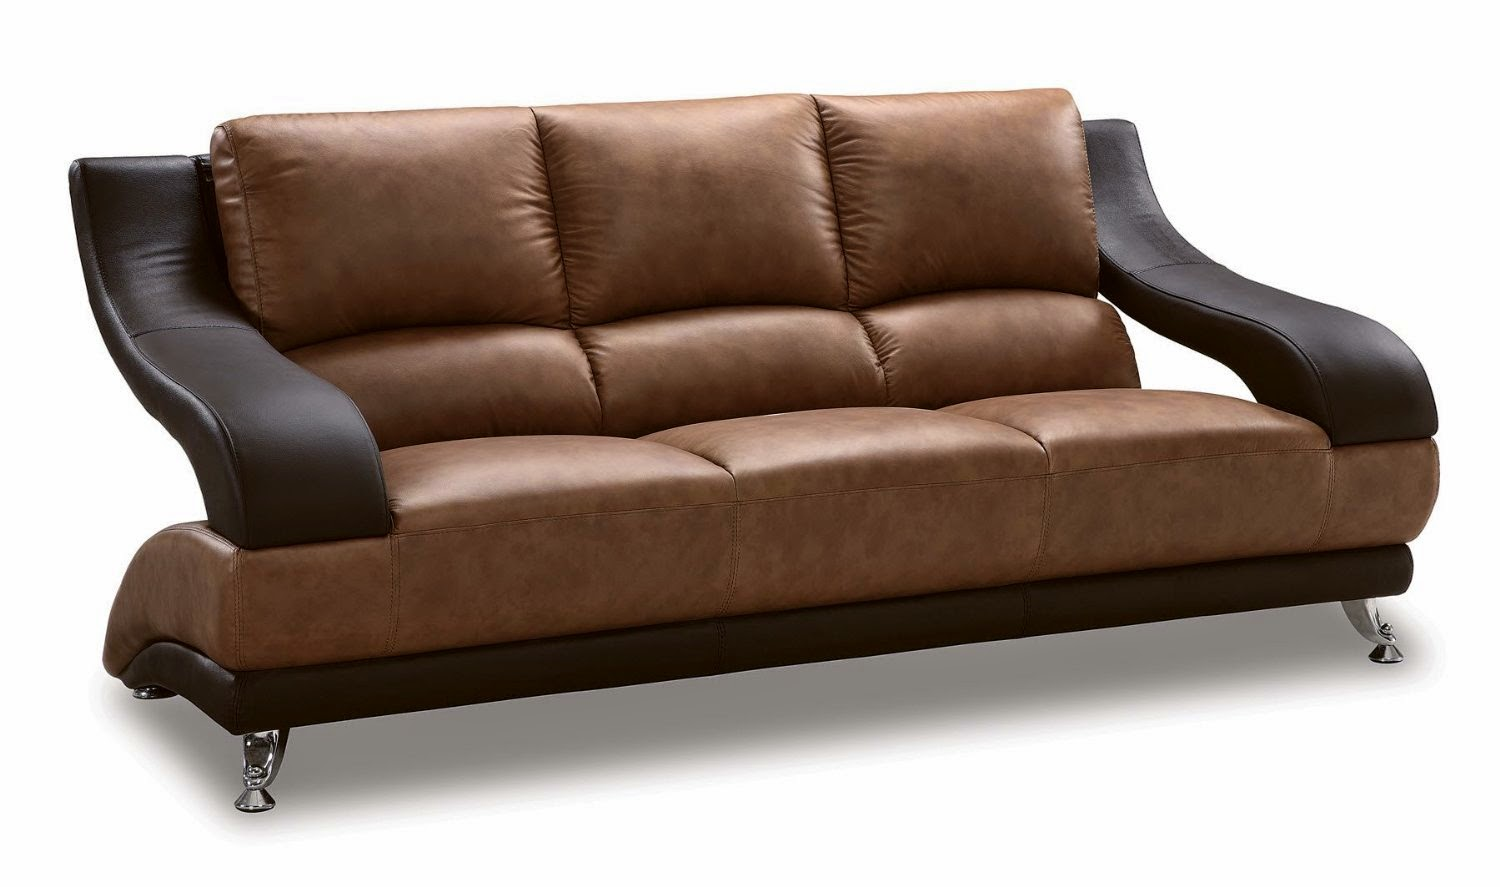 Modern Curved Sofa Reviews: Astoria Upholstered Large Curved ...